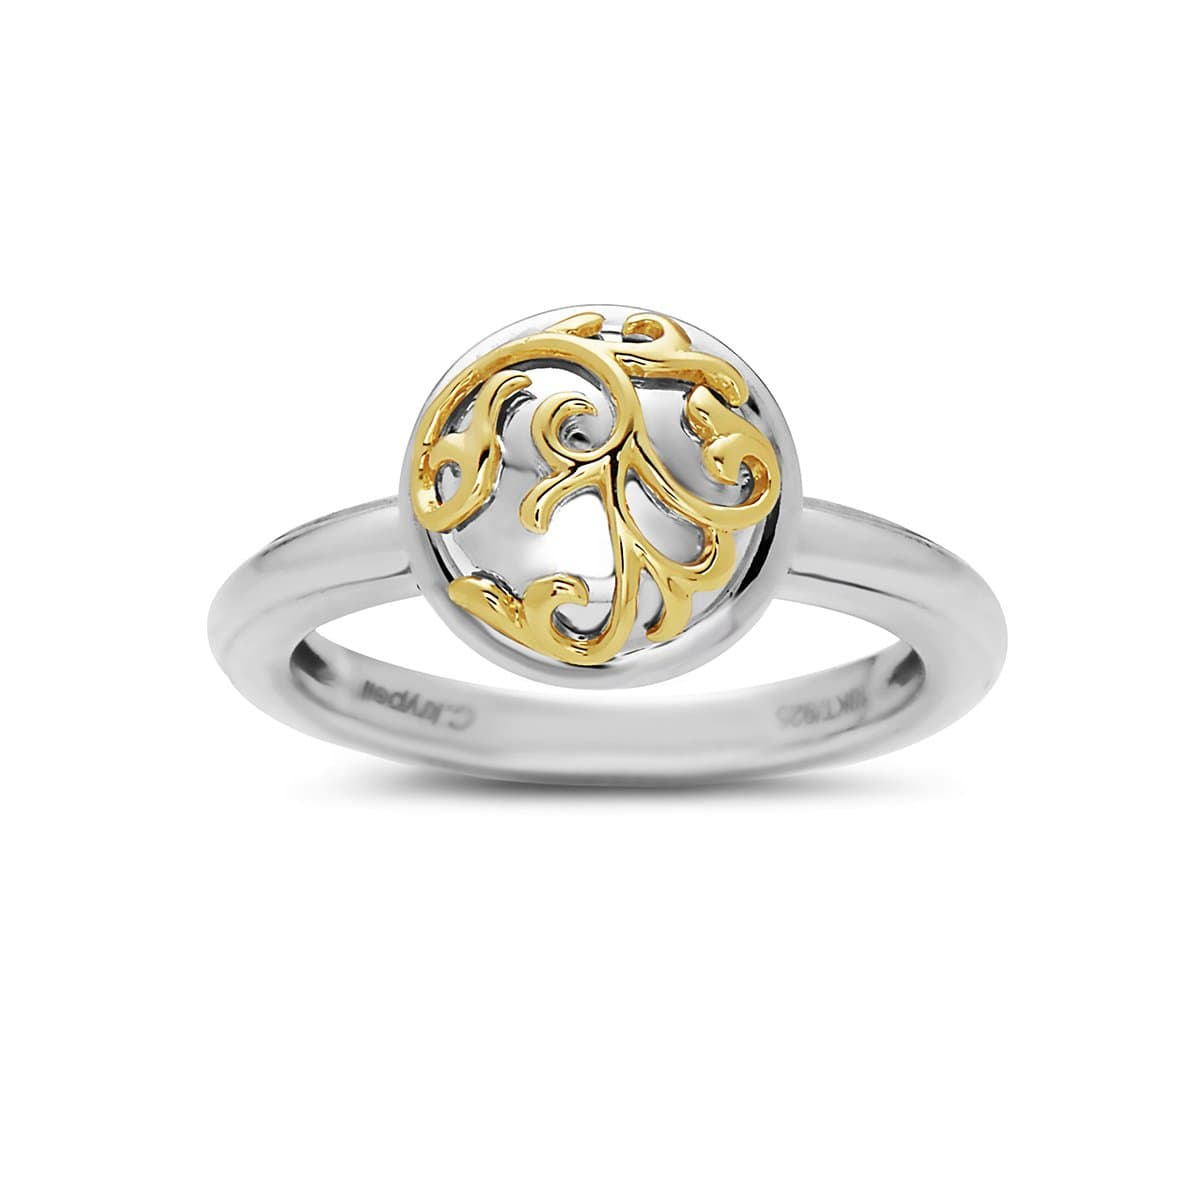 18K Yellow Gold & Sterling Silver Ivy Lace Ring